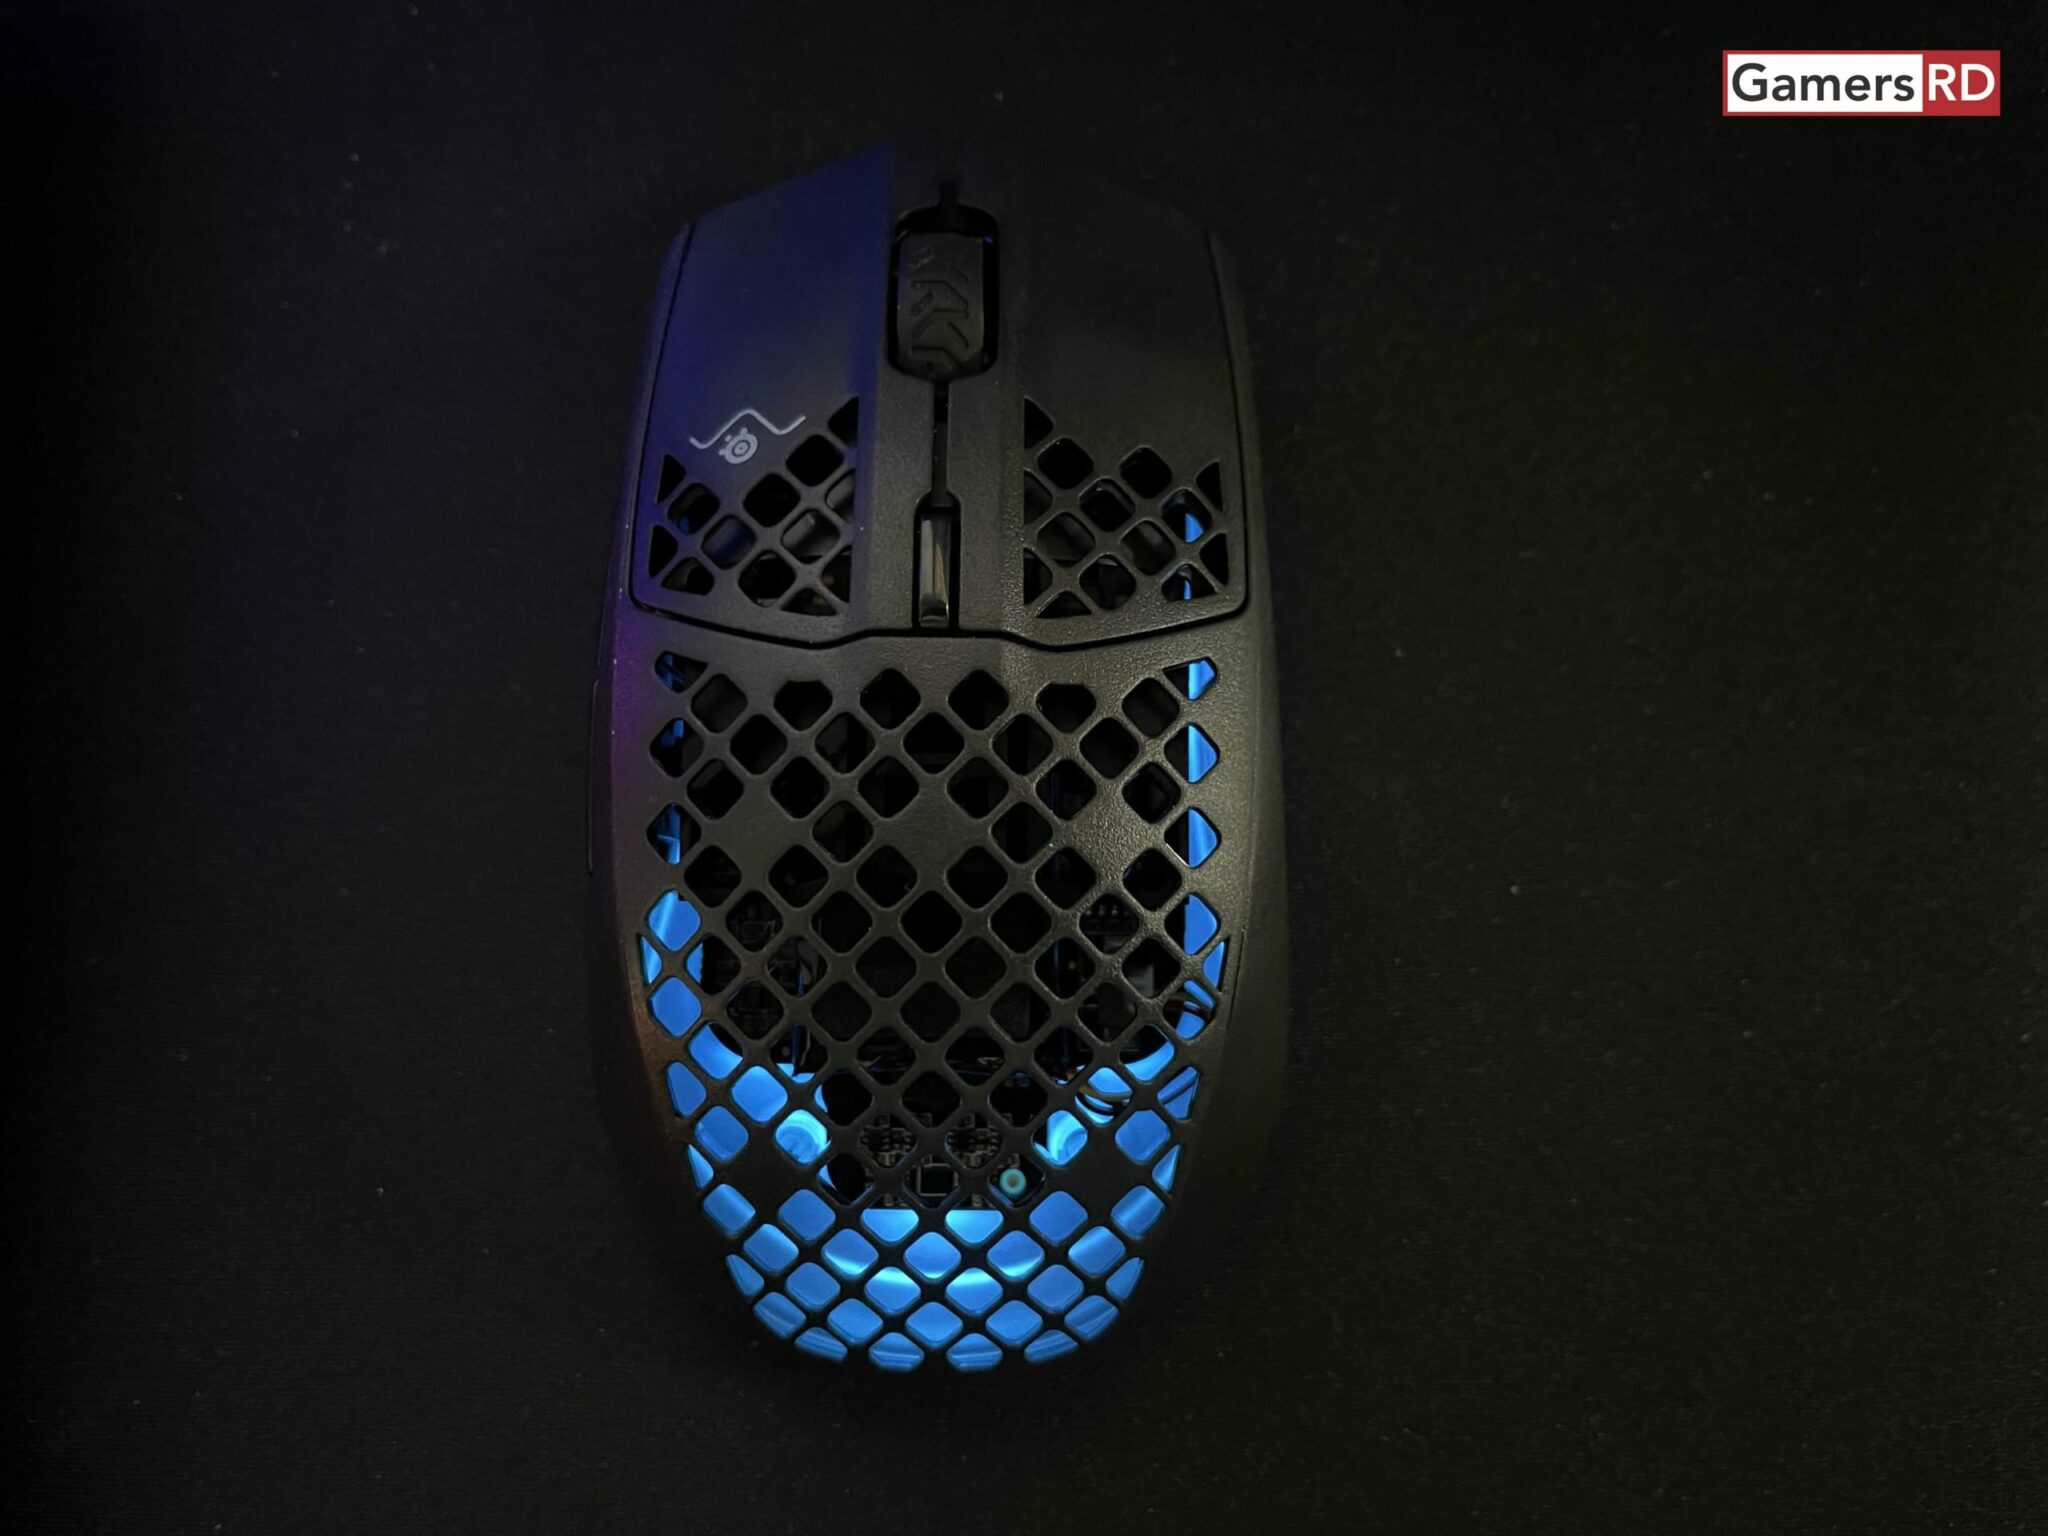 Steel Series Aerox 5 Wireless mouse gaming, Review 5 GamersRD